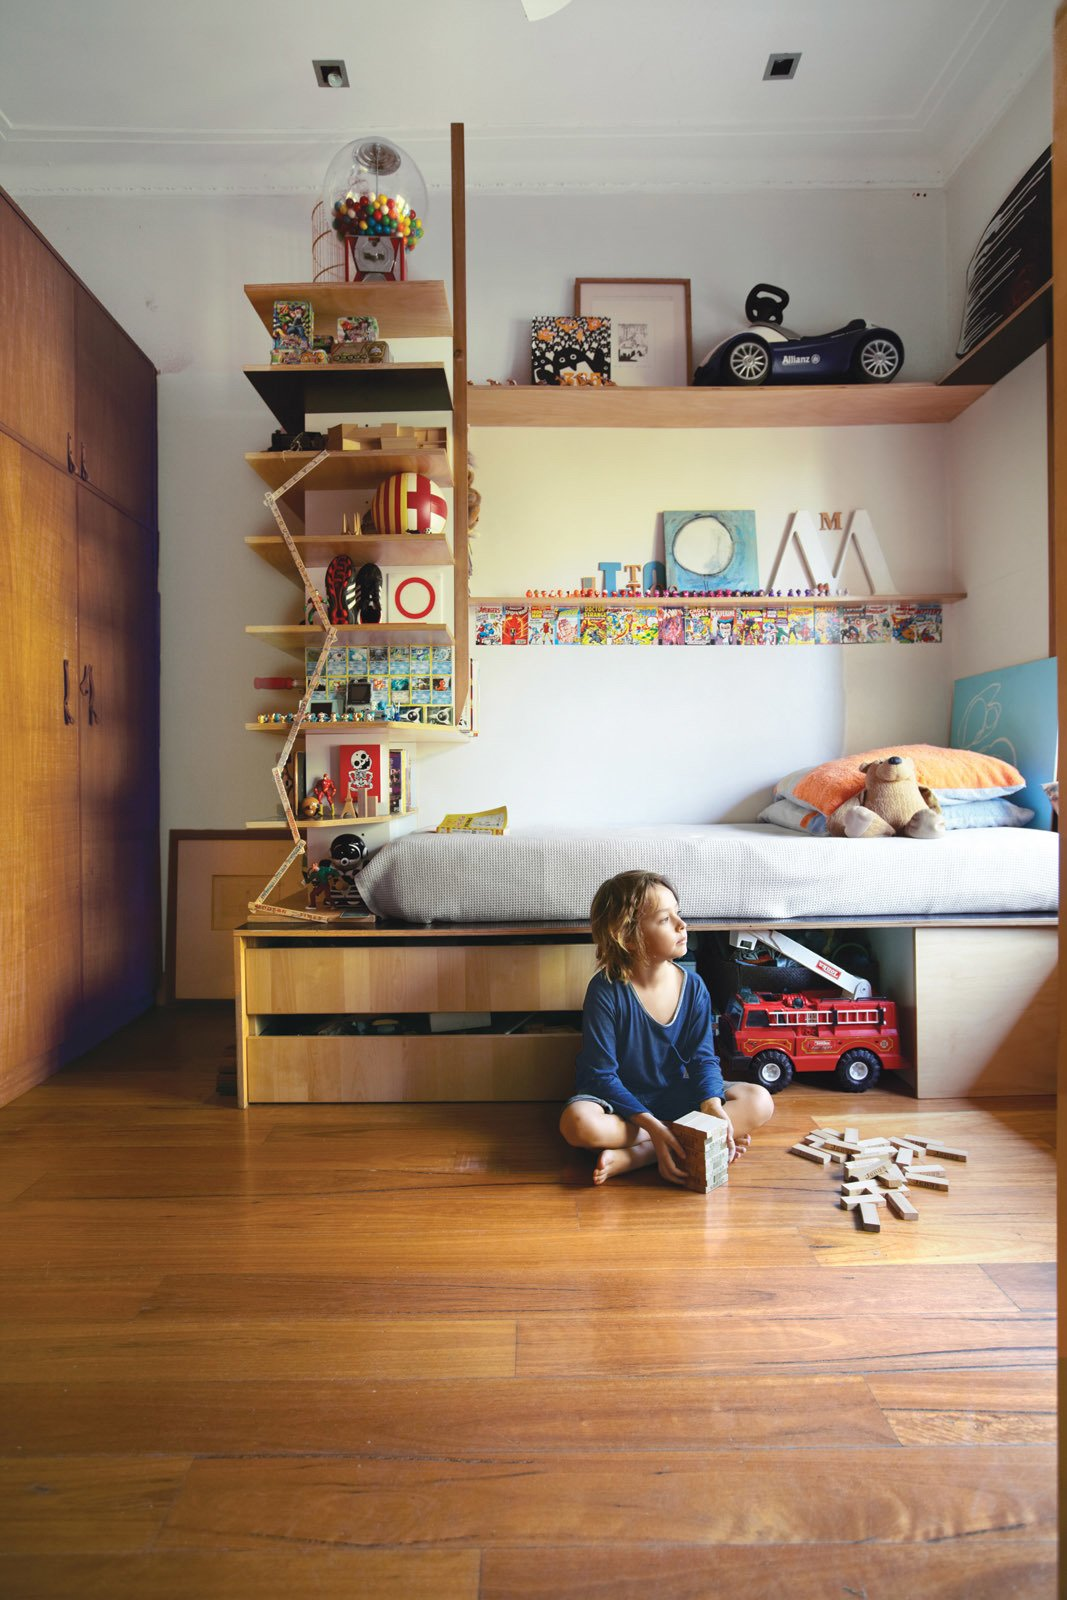 Kids Room, Bedroom Room Type, Shelves, Bed, Storage, Pre-Teen Age, Medium Hardwood Floor, and Boy Gender Tom's compact bedroom feels much larger thanks to interlocking shelves and storage. The plywood bed and surrounding shelving were custom-built by Wilkin and a hired carpenter.  Photo 8 of 8 in Almost Perfect